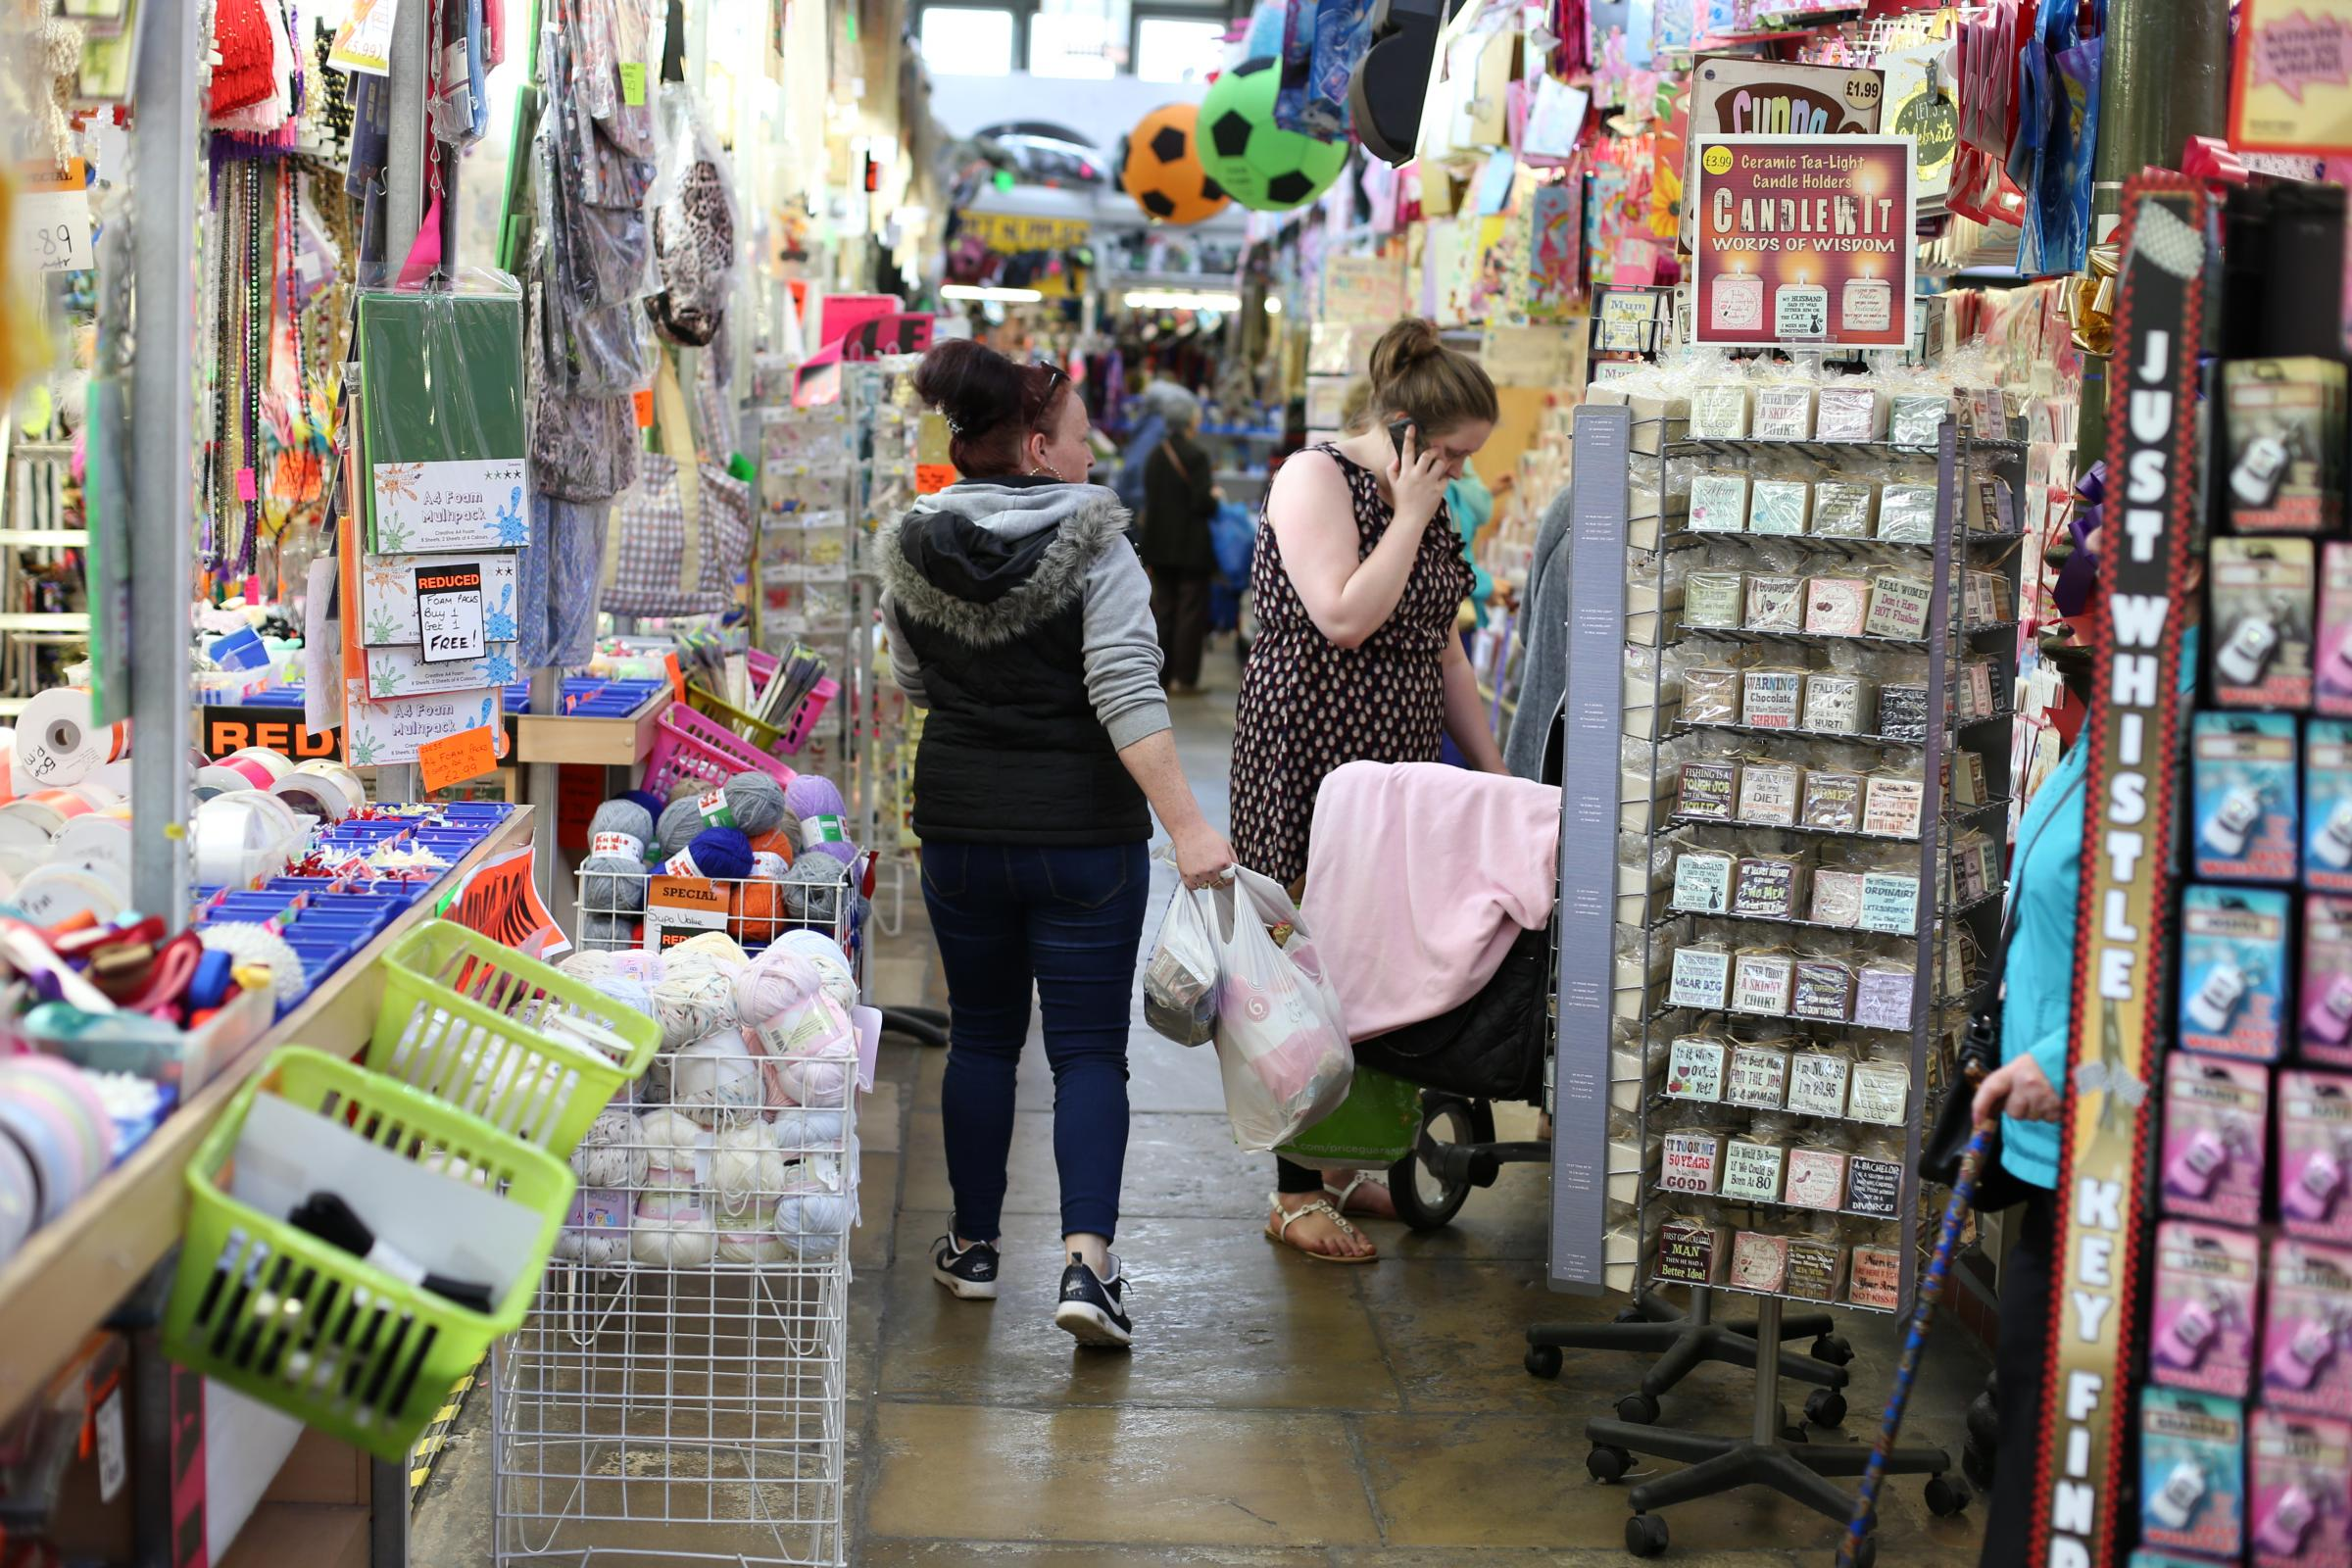 A day in the life of darlington covered market the traders the a day in the life of darlington covered market the traders the customers and its 152 year history the northern echo kristyandbryce Choice Image